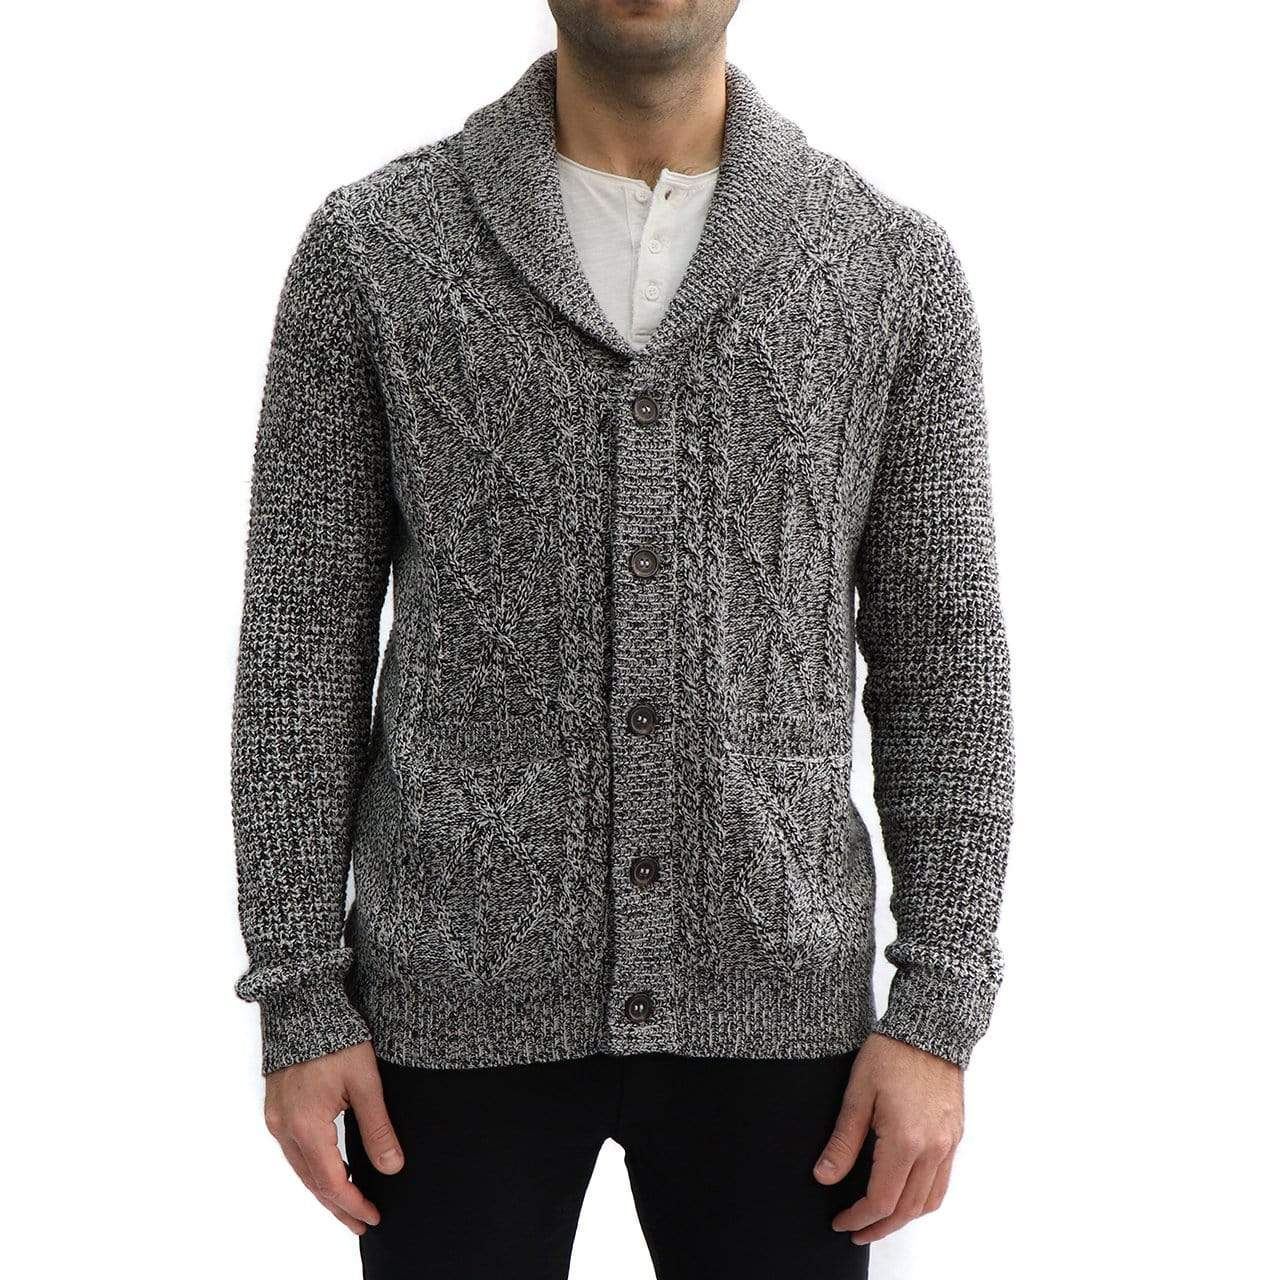 RD International Style BLACK / S Grandfather Cardigan Sweater